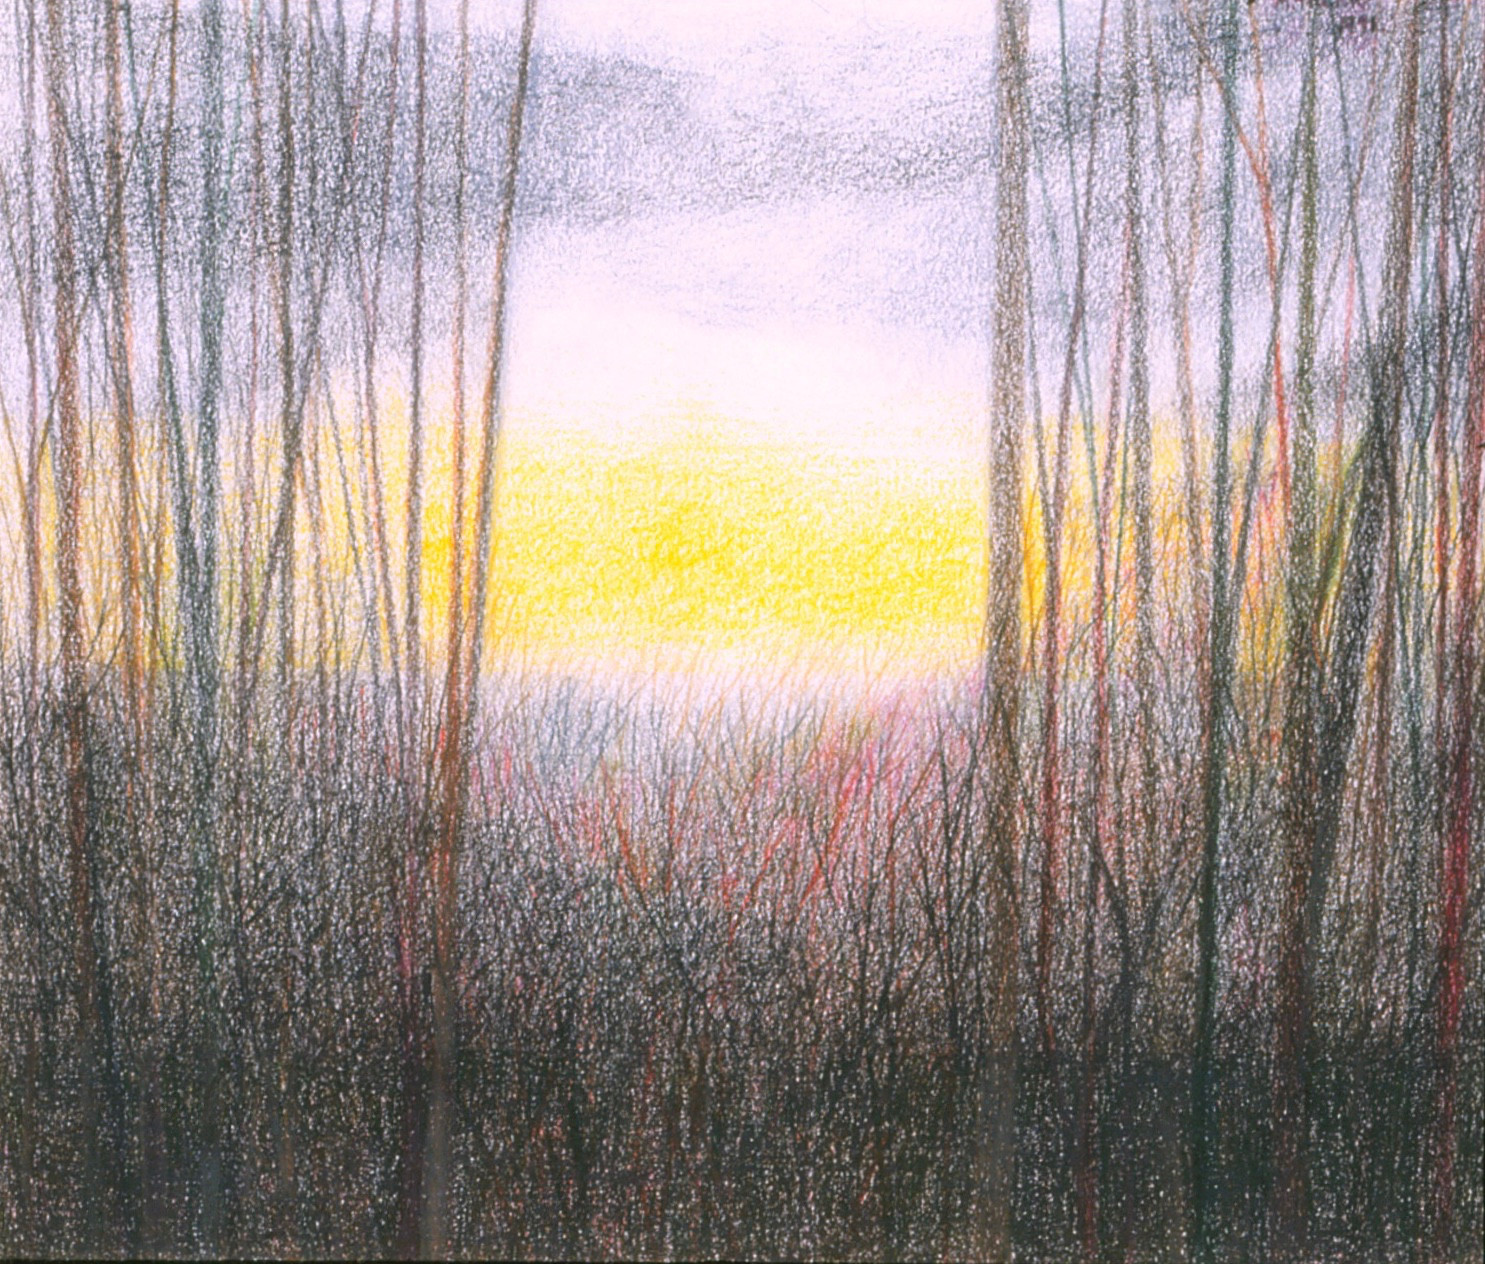 Untitled - trees and shrubs